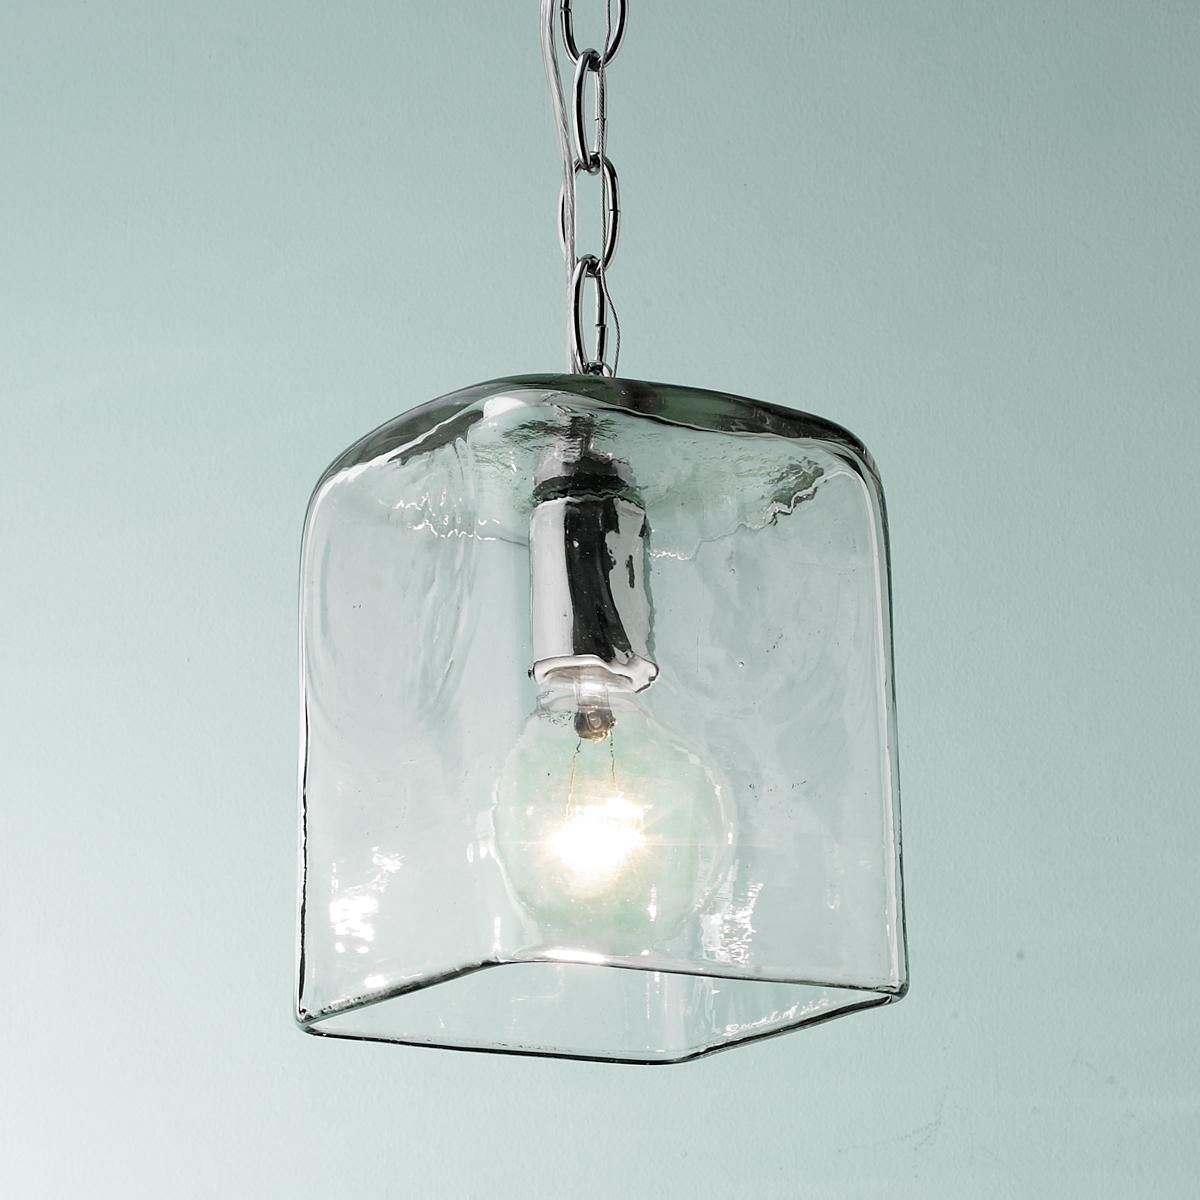 Small Square Gl Pendant Light With Chain New Kitchen